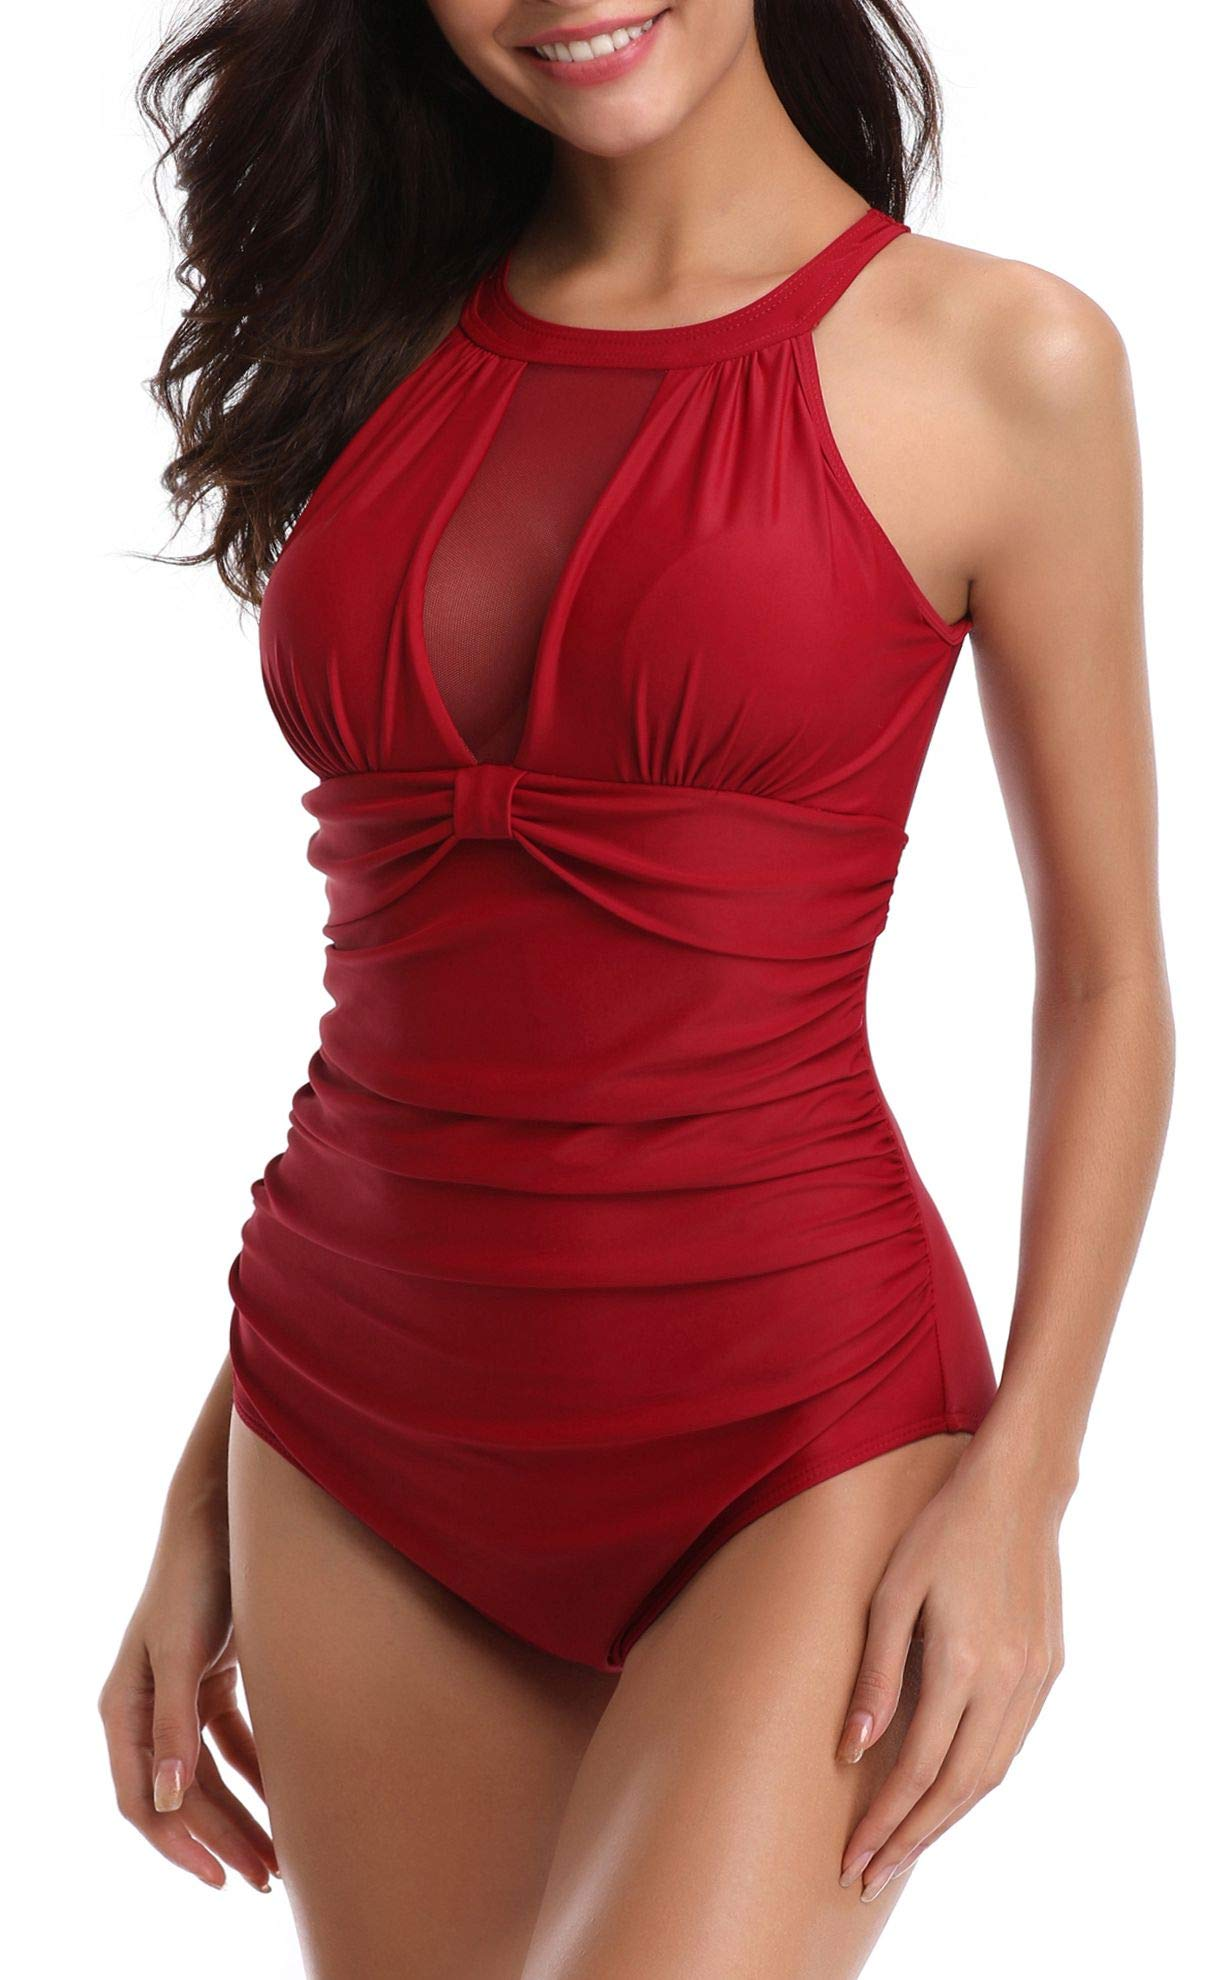 Yong Dong V-Neck Bathing Suits for Women Halter High Neck One Piece Swimsuits Bodysuit (Large, Burgundy)